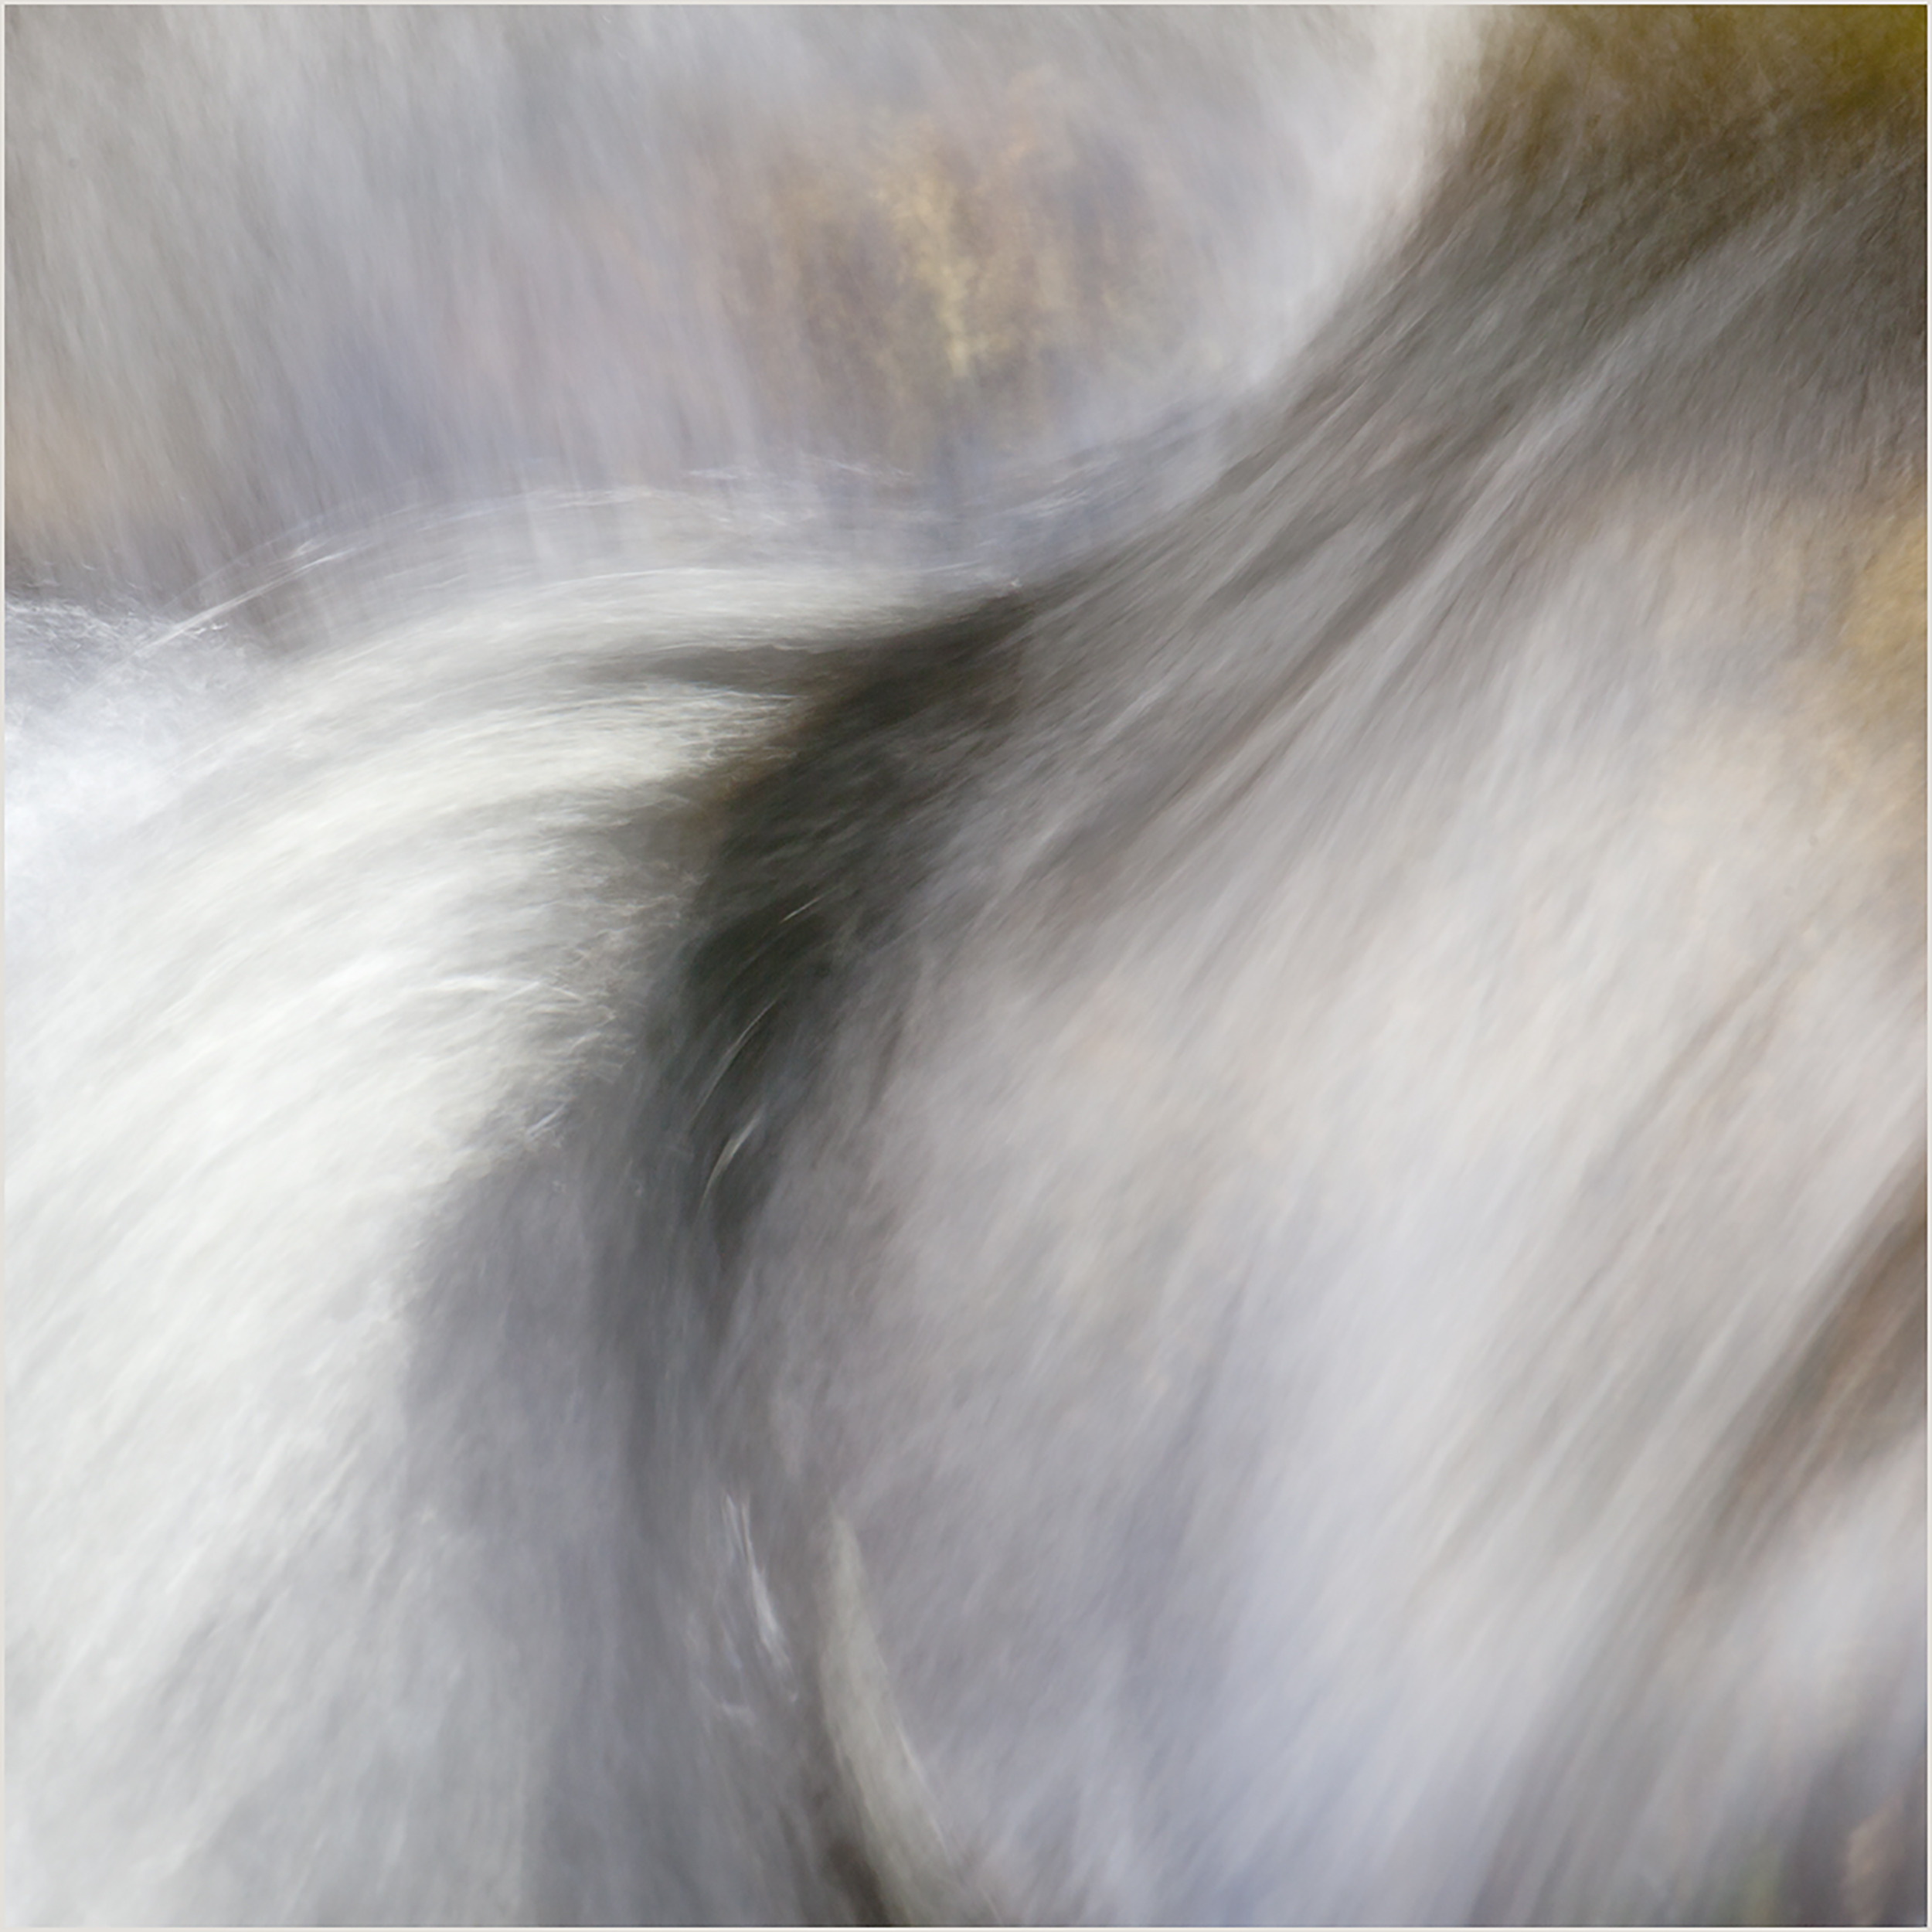 Water Abstract 10.jpg